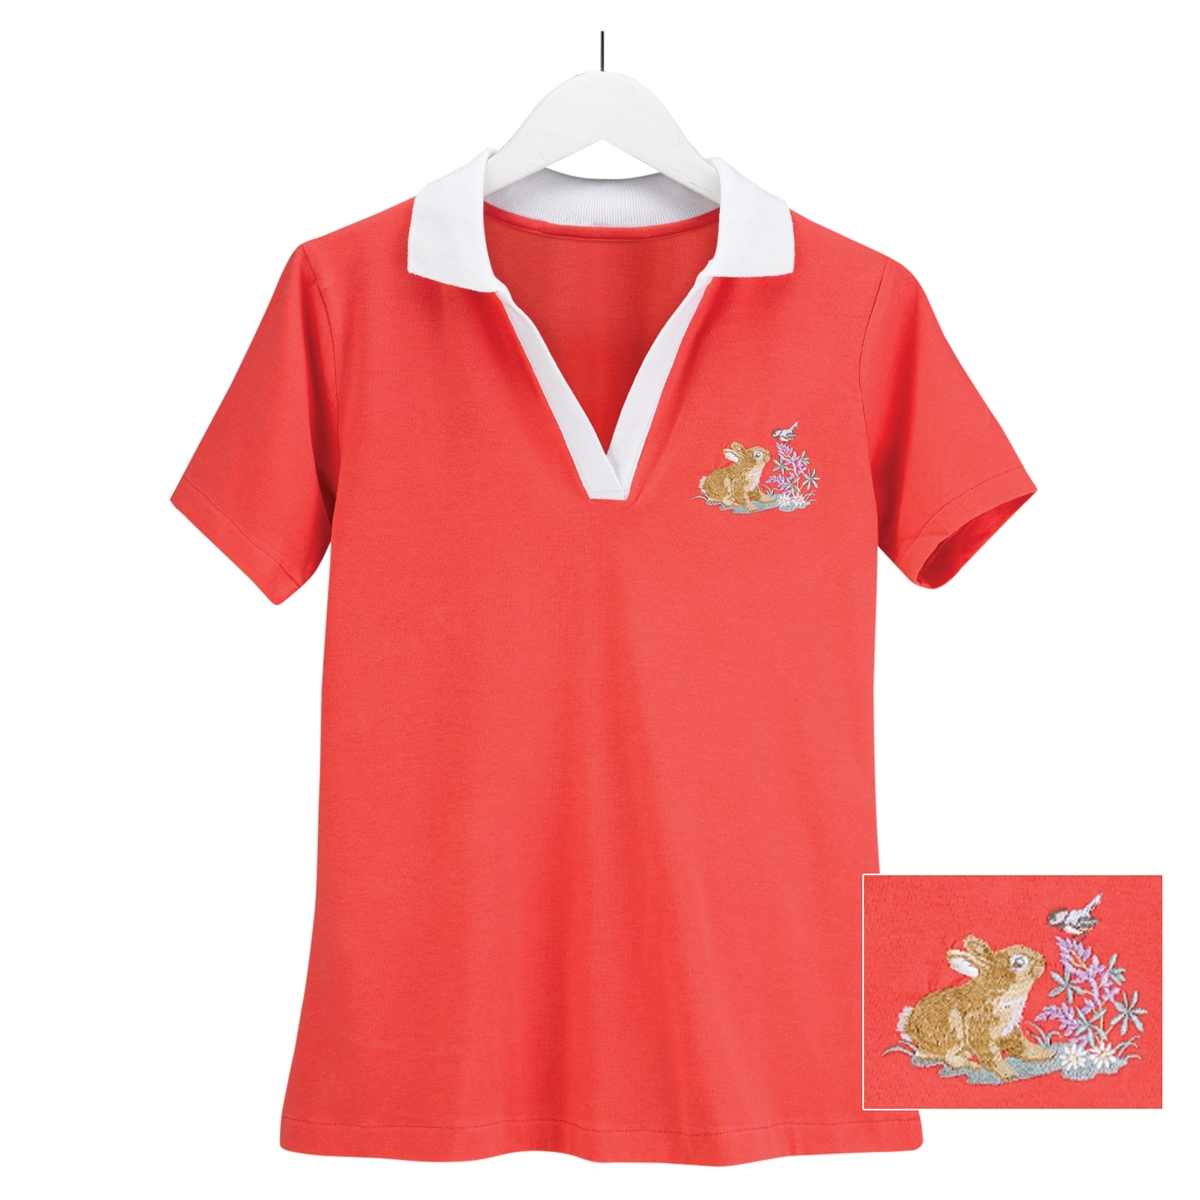 Bunny & Flowers Polo